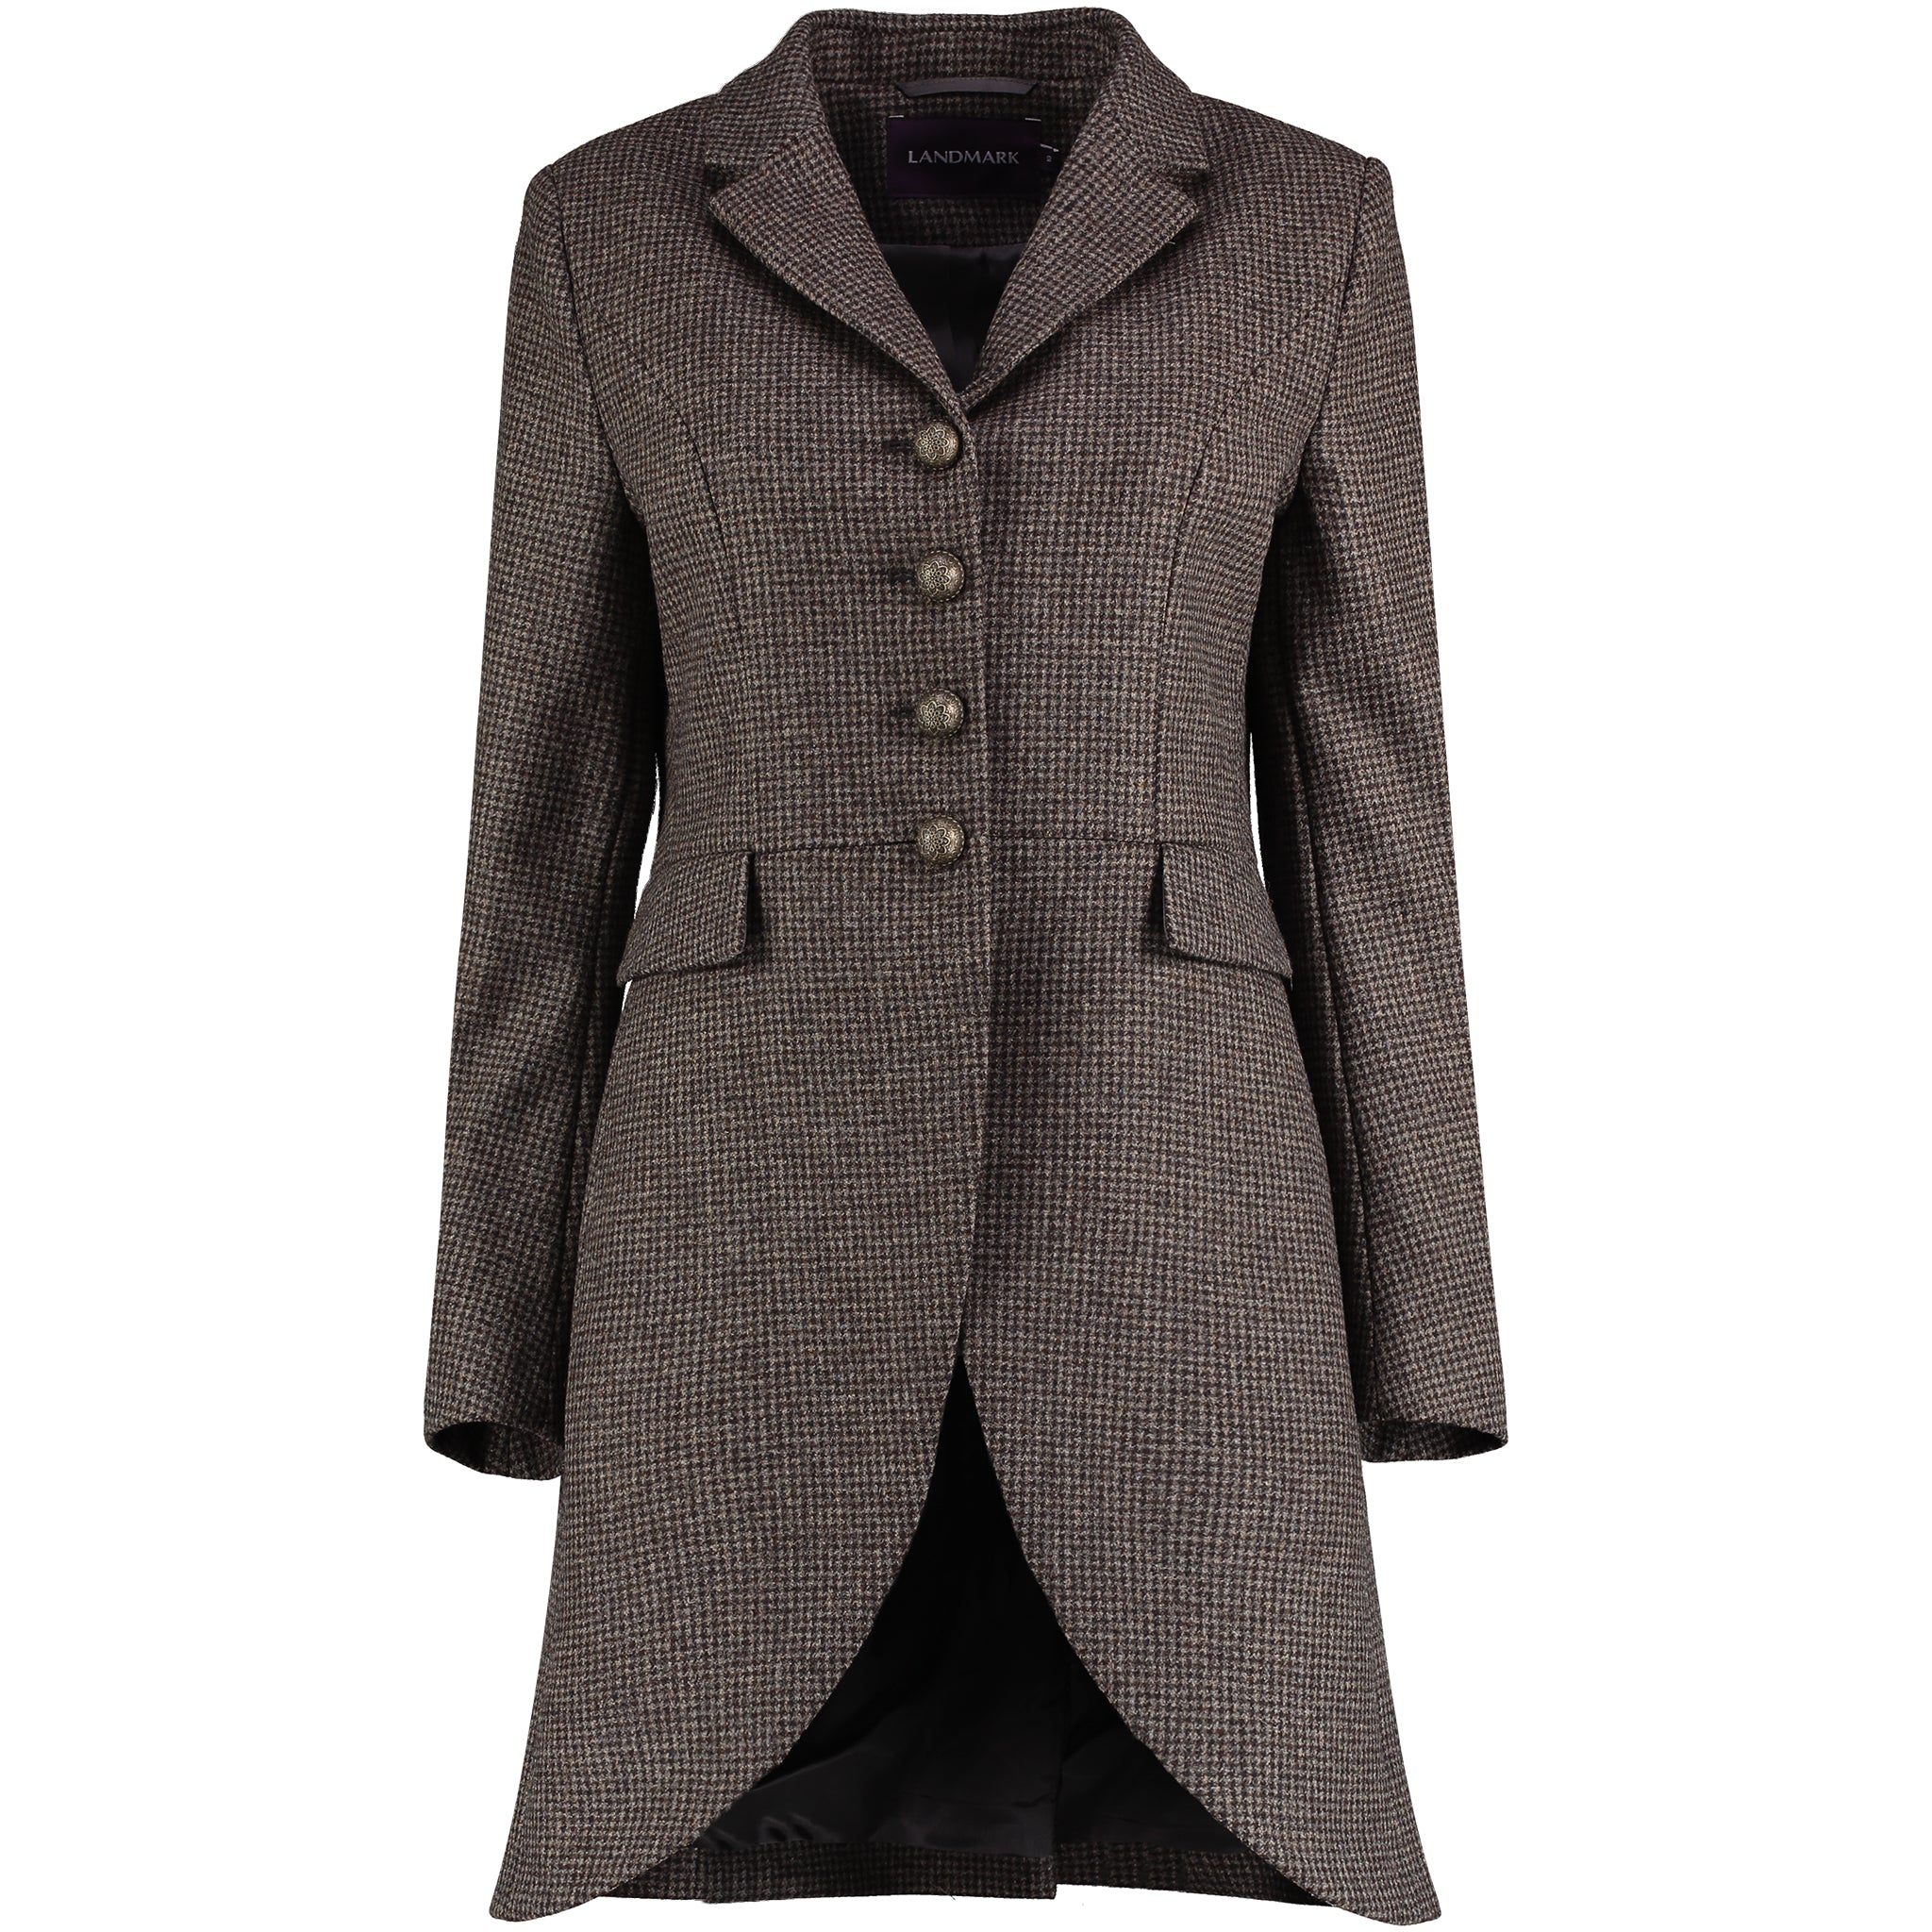 Landmark New Riding Tweed Coat for Ladies in Chocolate Puppytooth